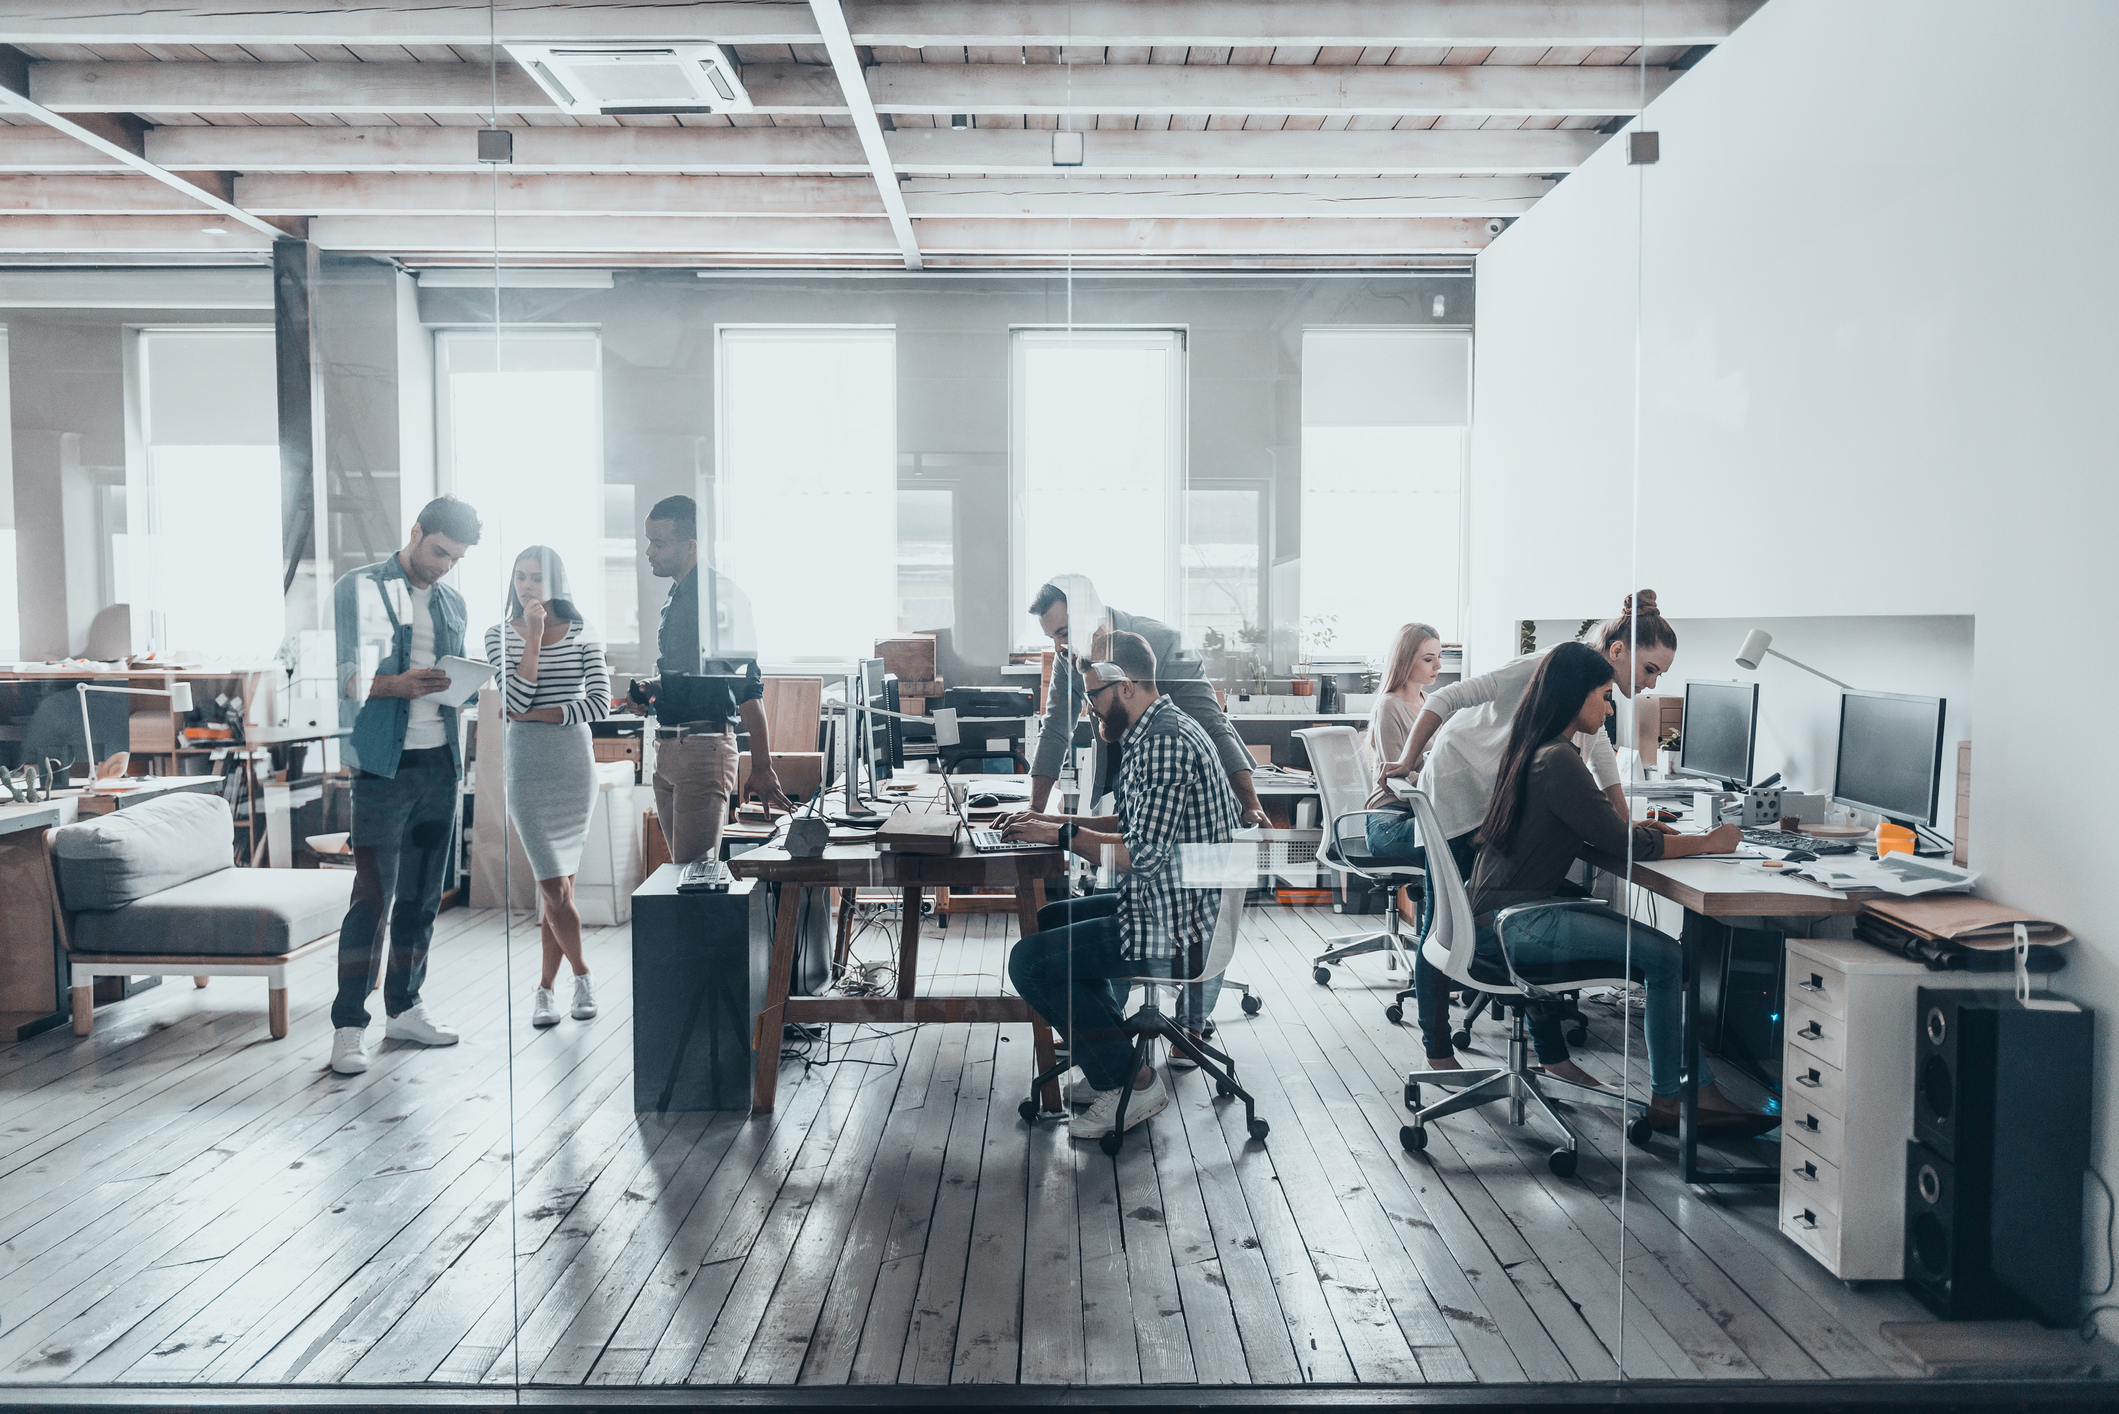 employees in an open work environment working in pairs